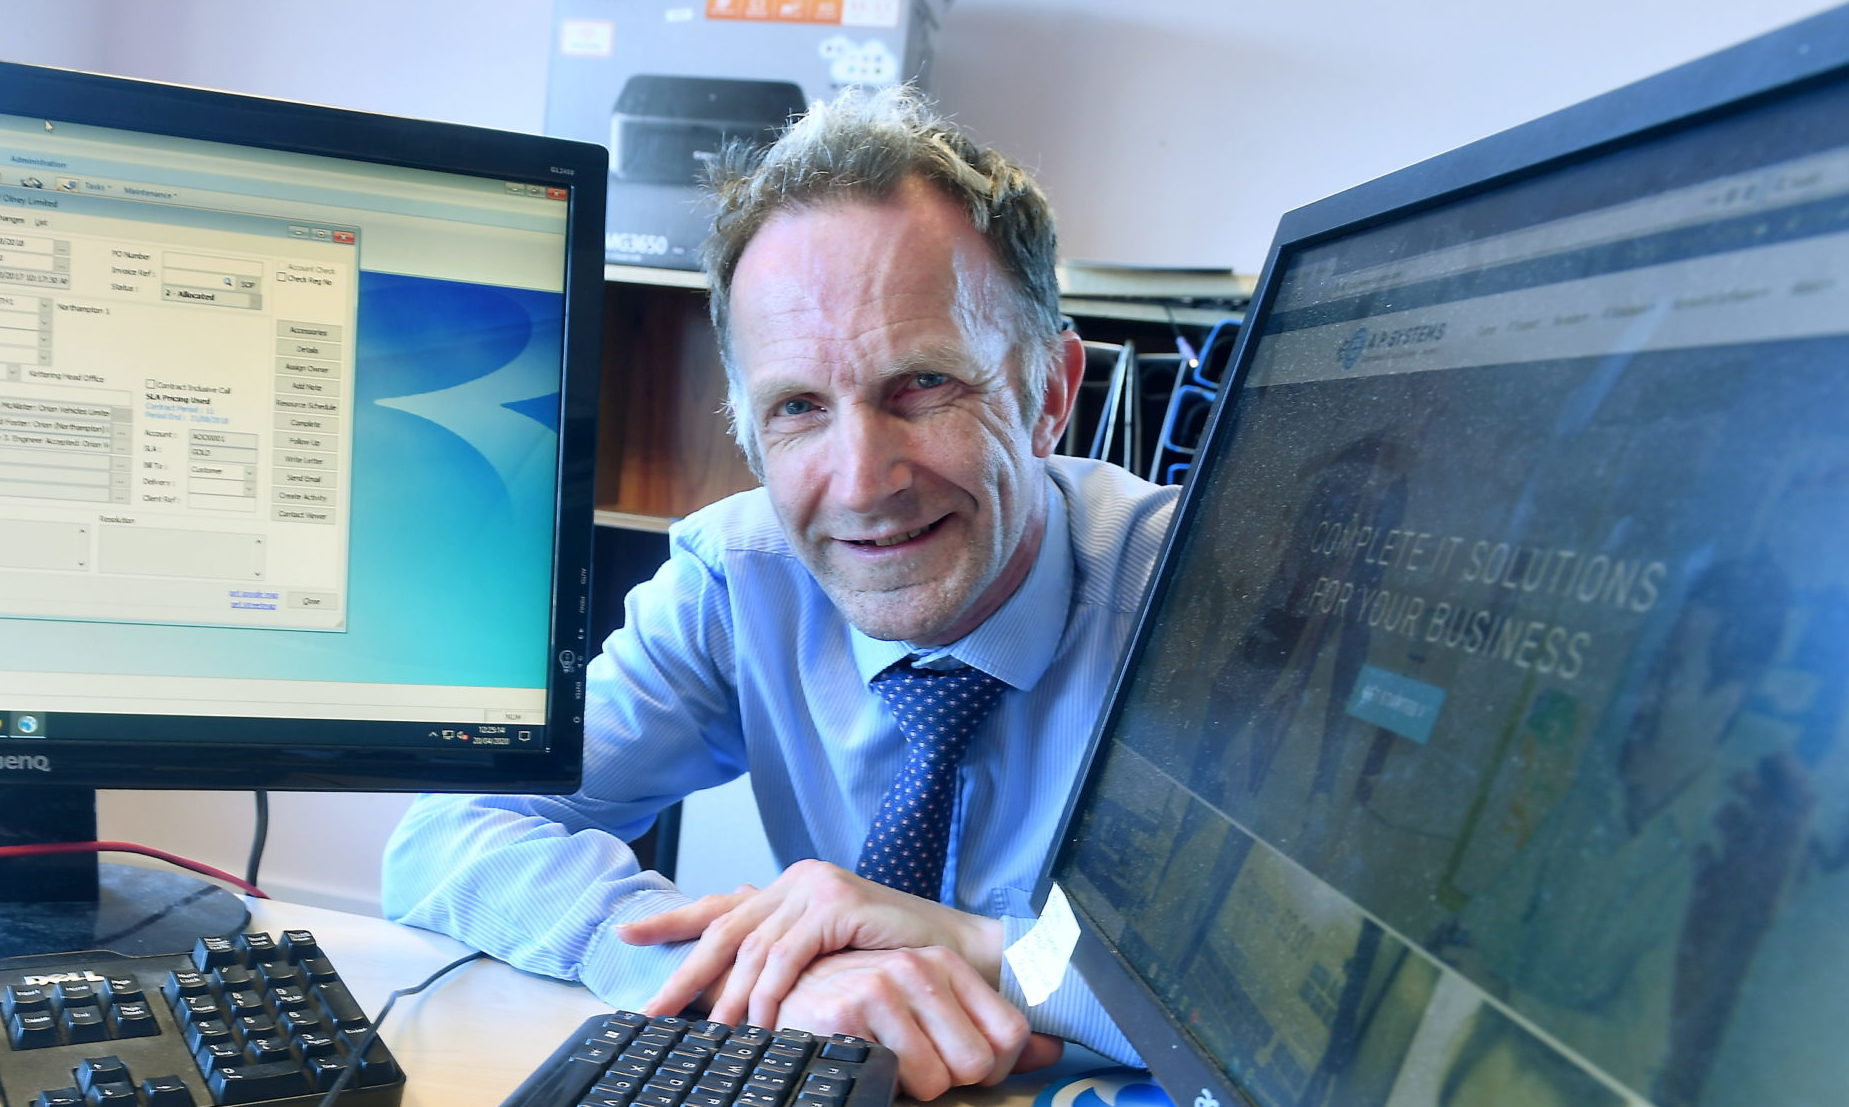 David Anderson established his computing company AP Systems in 1985. Picture by Chris Sumner